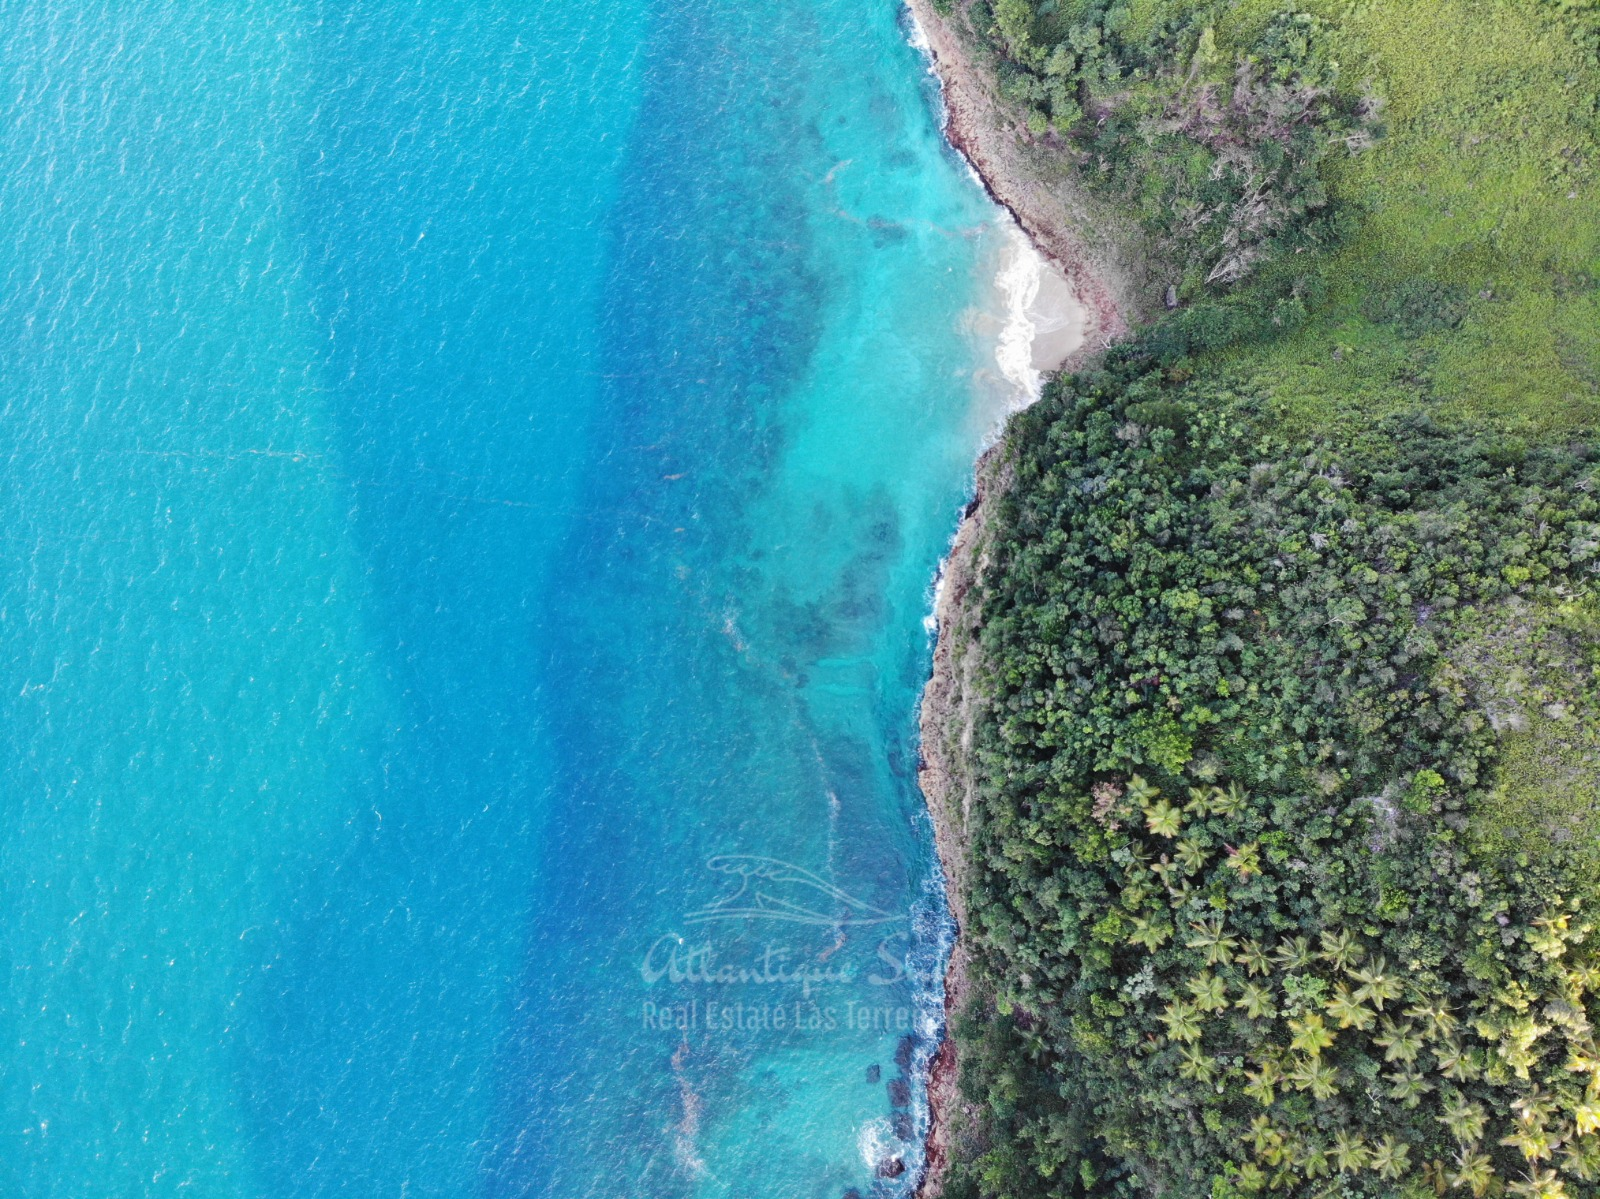 Cliff Land for Sale Las Terrenas 18.jpeg